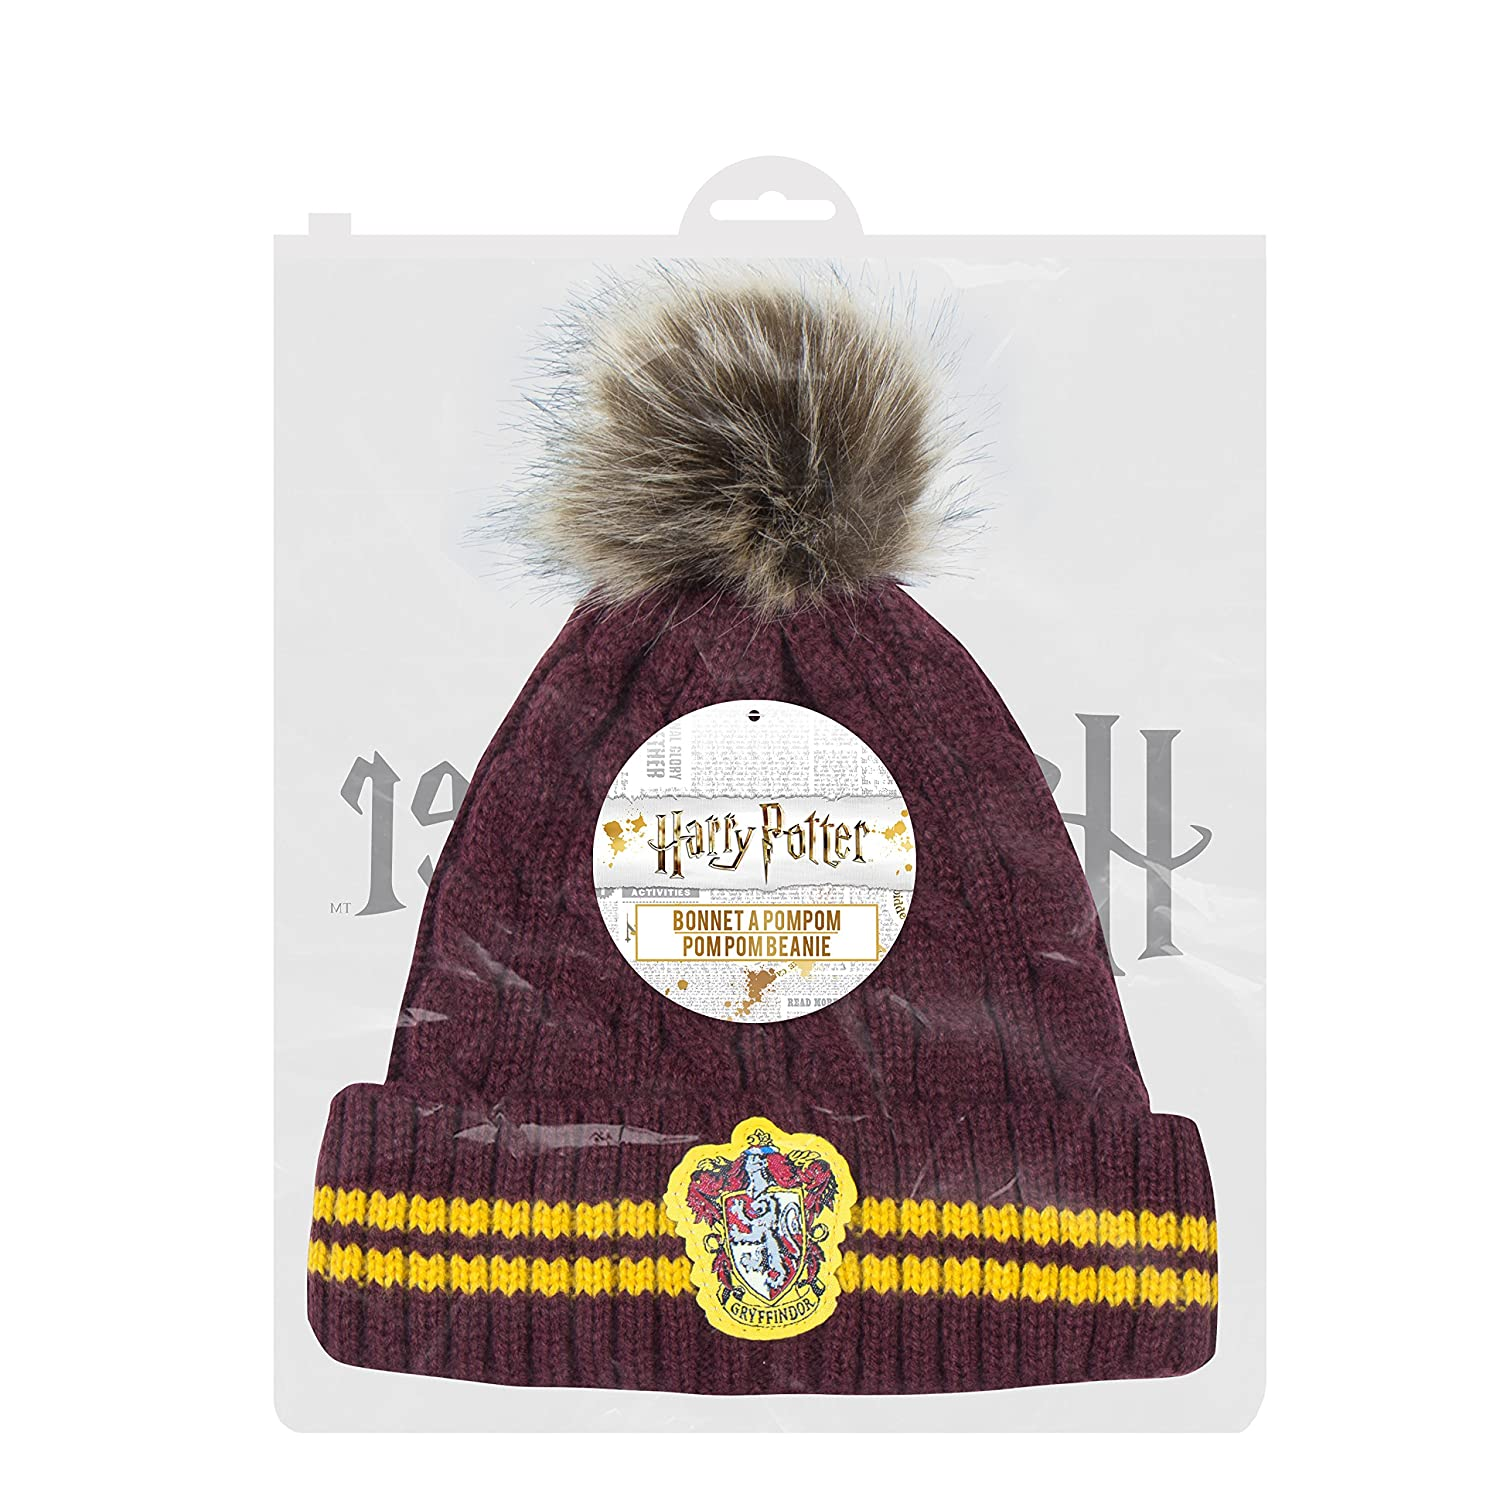 213b445aeee Amazon.com  Cinereplicas Harry Potter Beanie Hat Knit Cap - Official  (Pompom Gryffindor)  Clothing